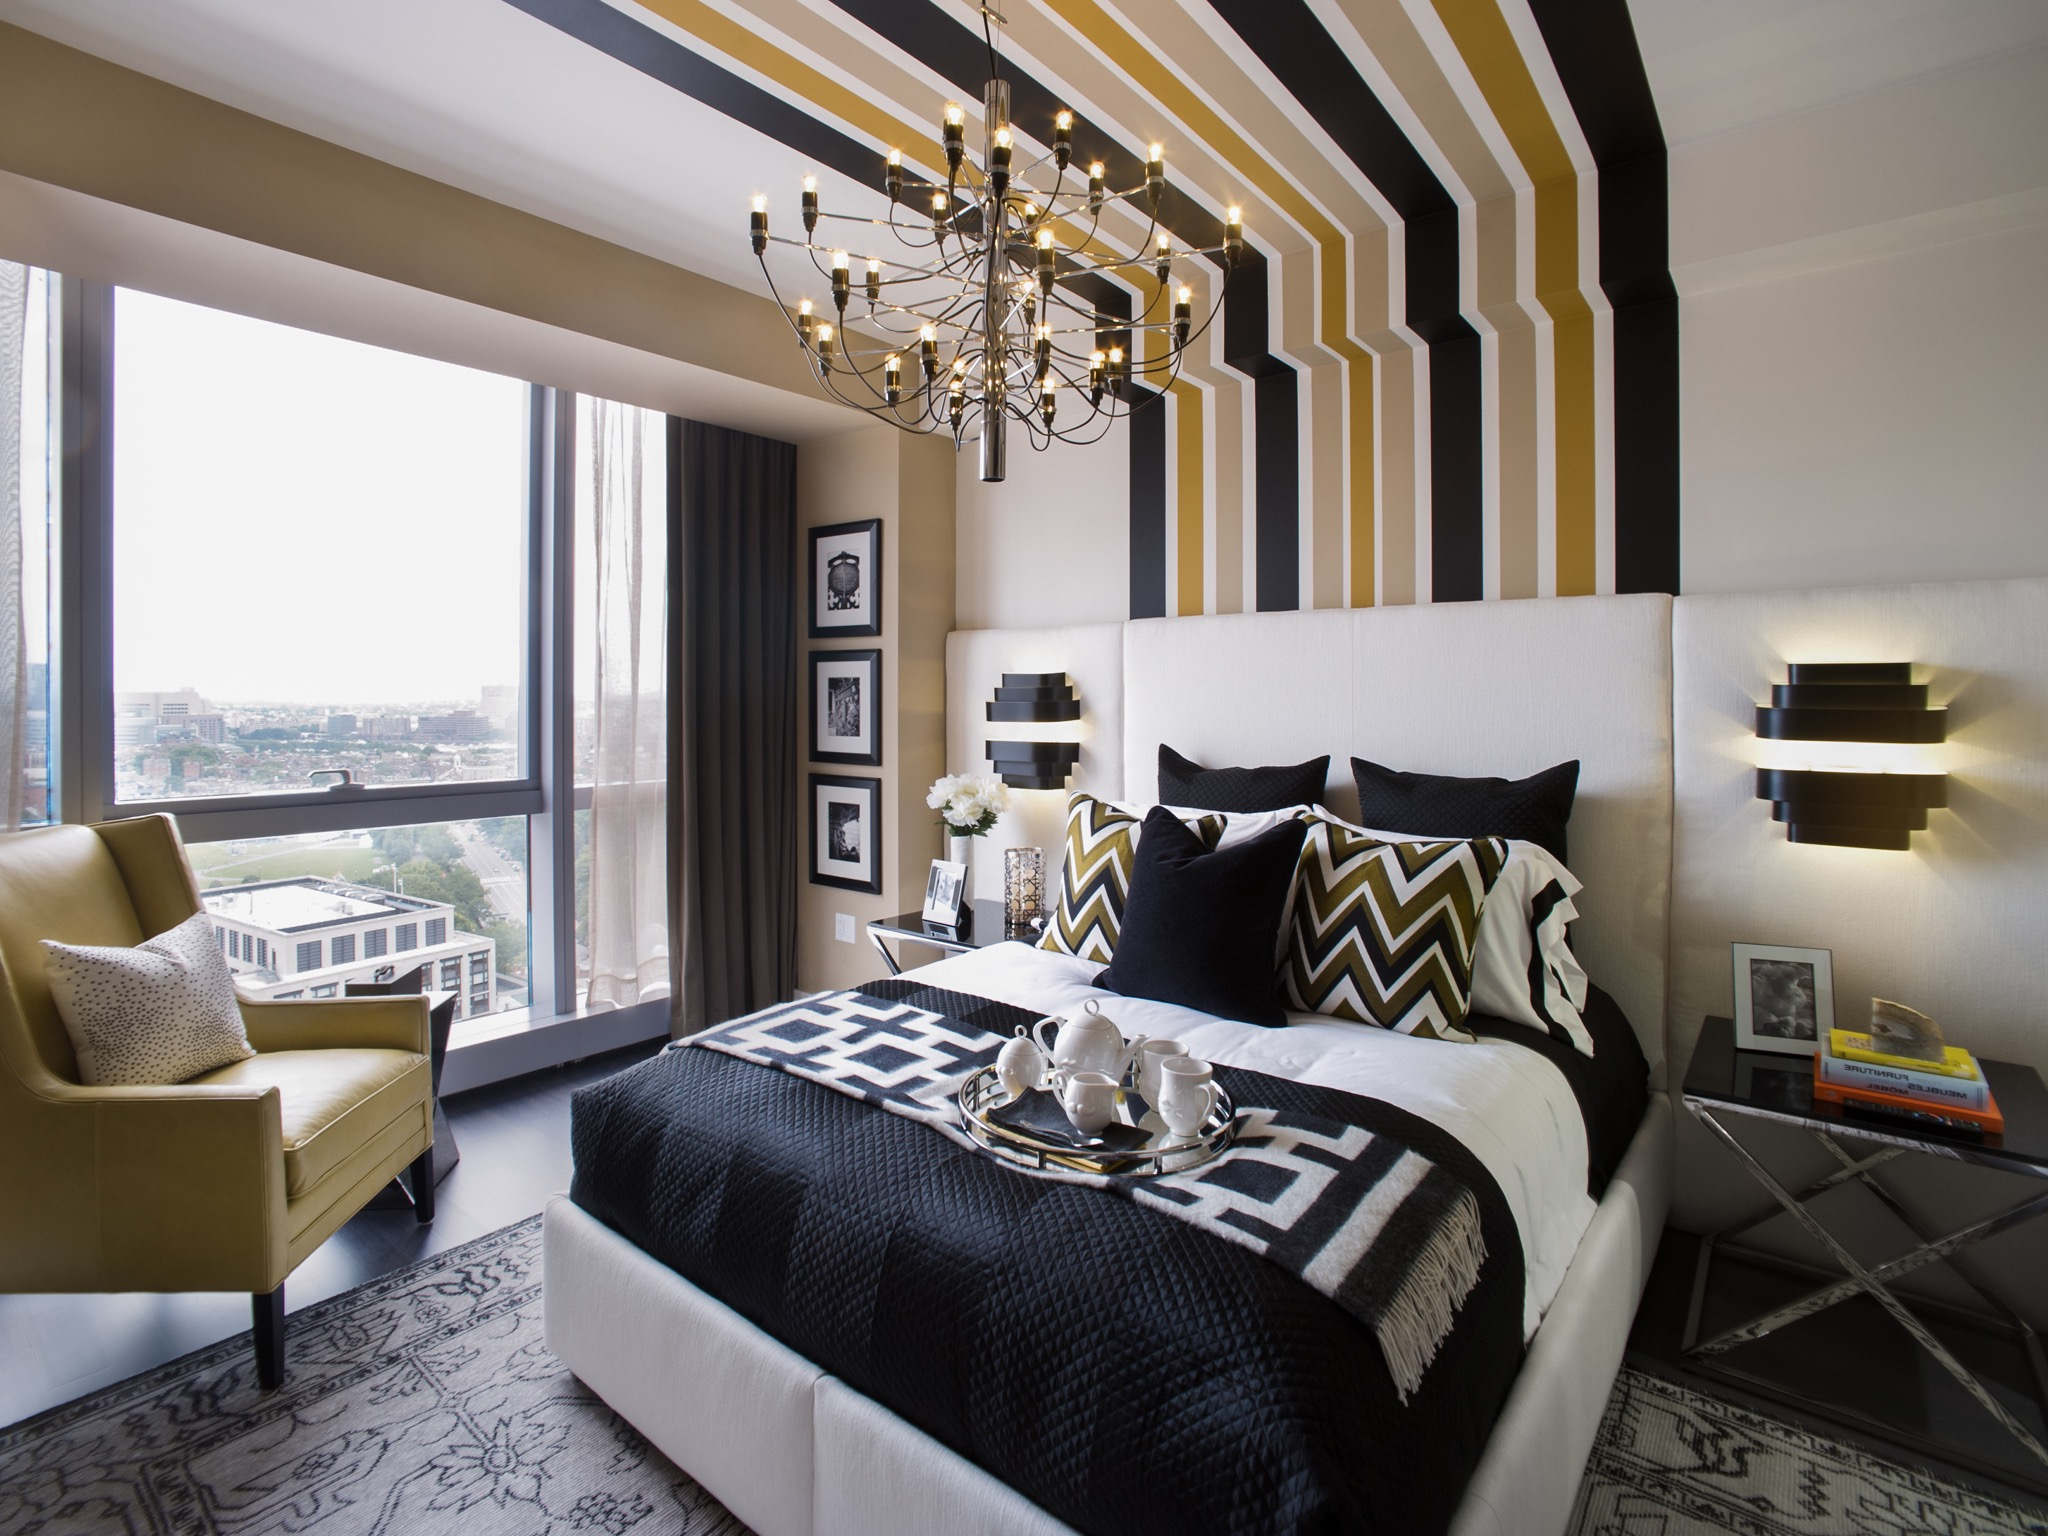 Stunning Apartment Family Bedroom With Modern Wall Decor (Image 30 of 30)